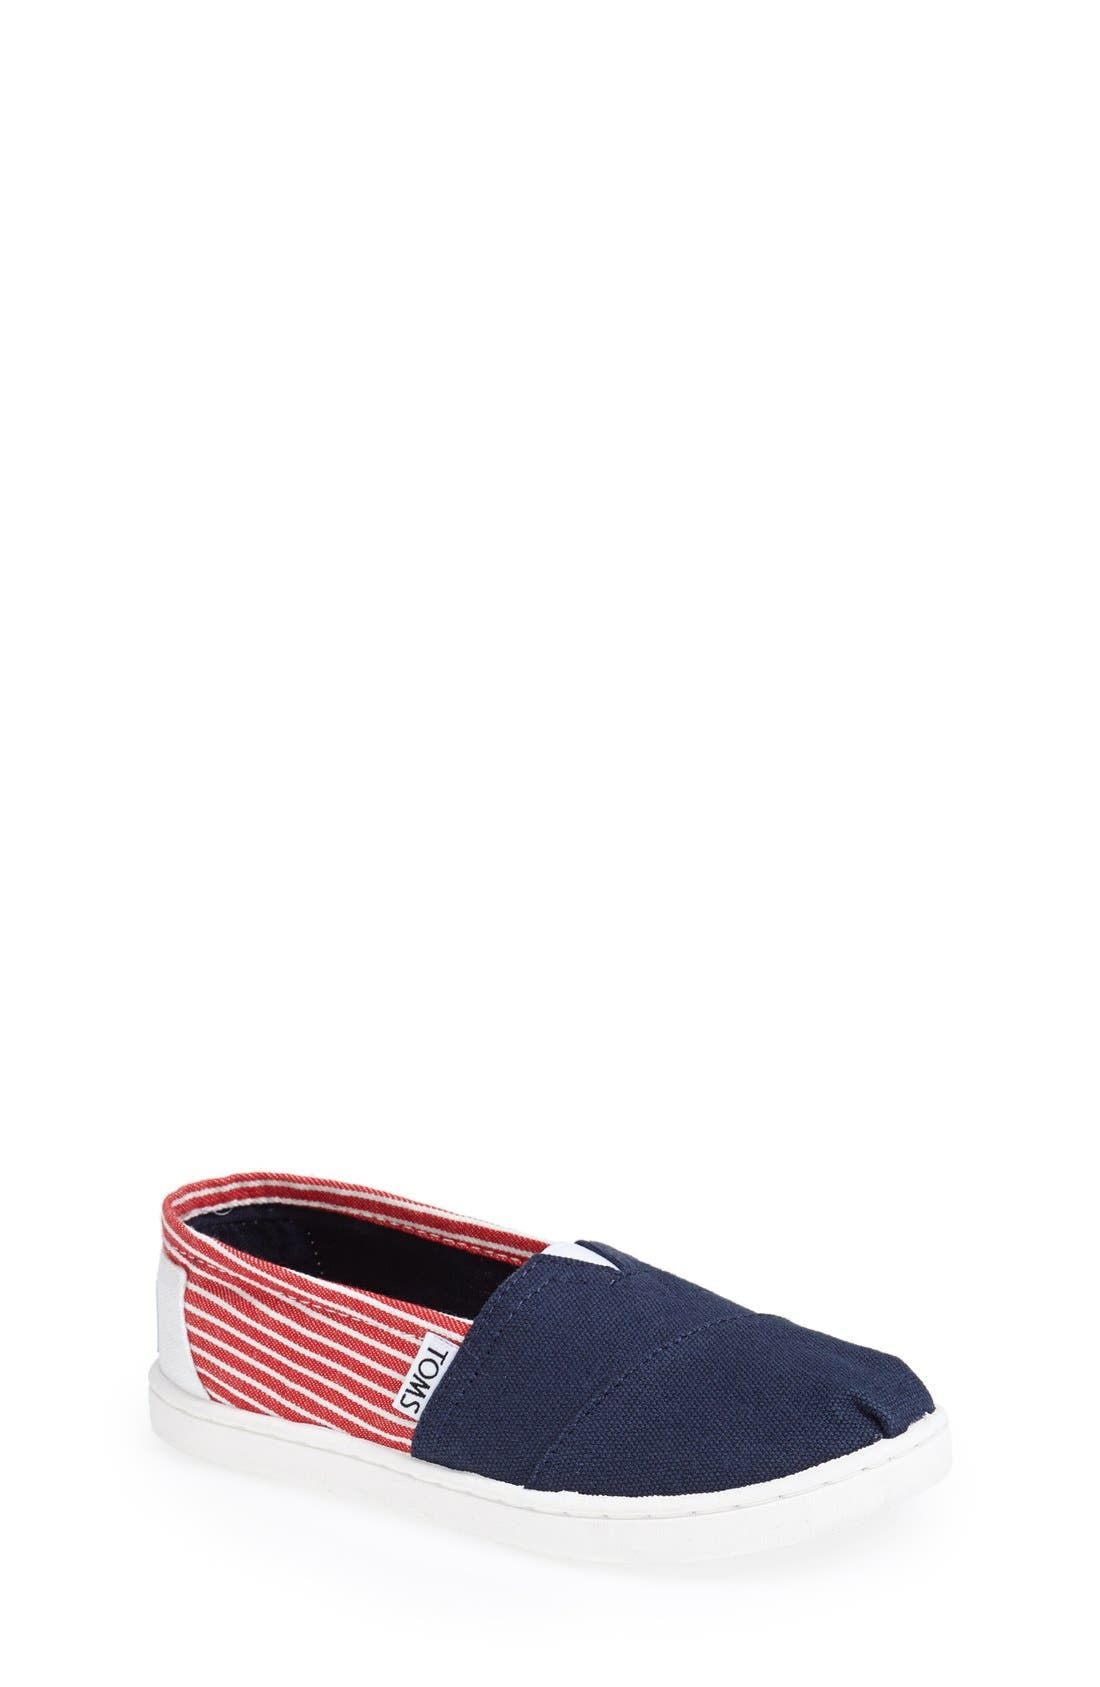 Alternate Image 1 Selected - TOMS 'Youth Classic - Freedom' Slip-On (Toddler, Little Kid & Big Kid)